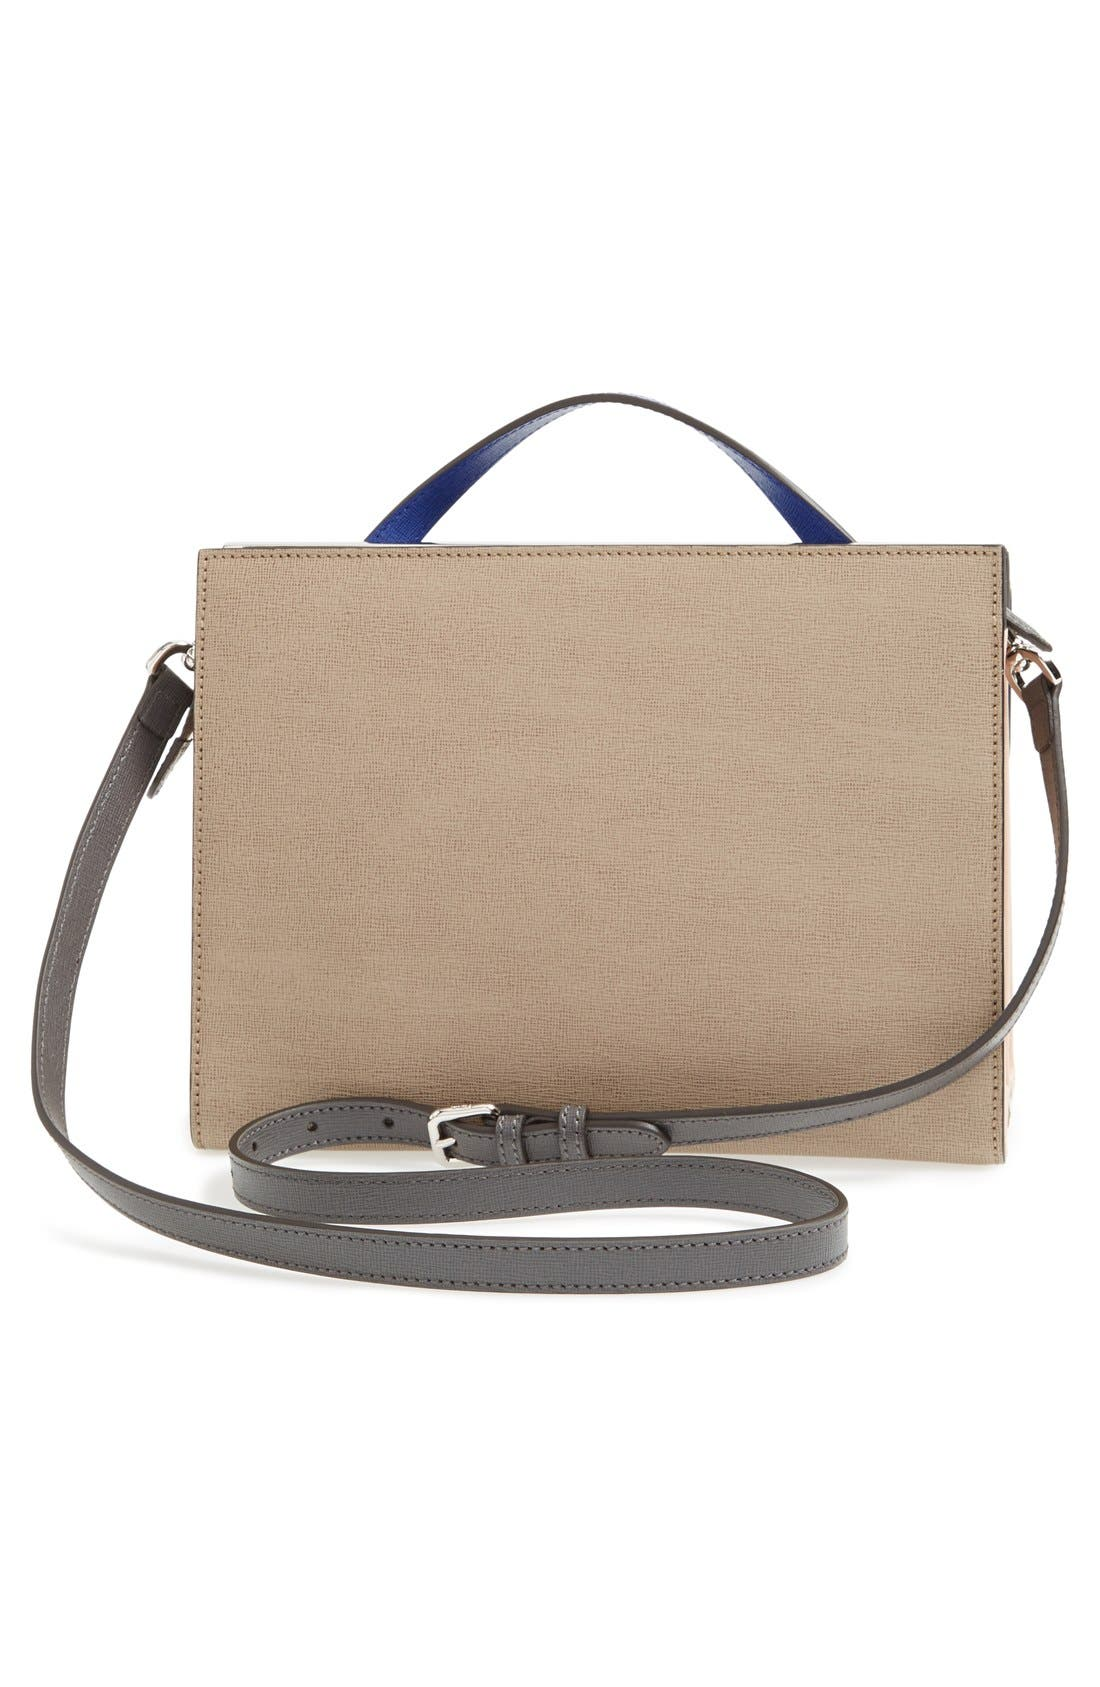 Alternate Image 4  - Fendi 'Demi Jour' Colorblock Leather Satchel